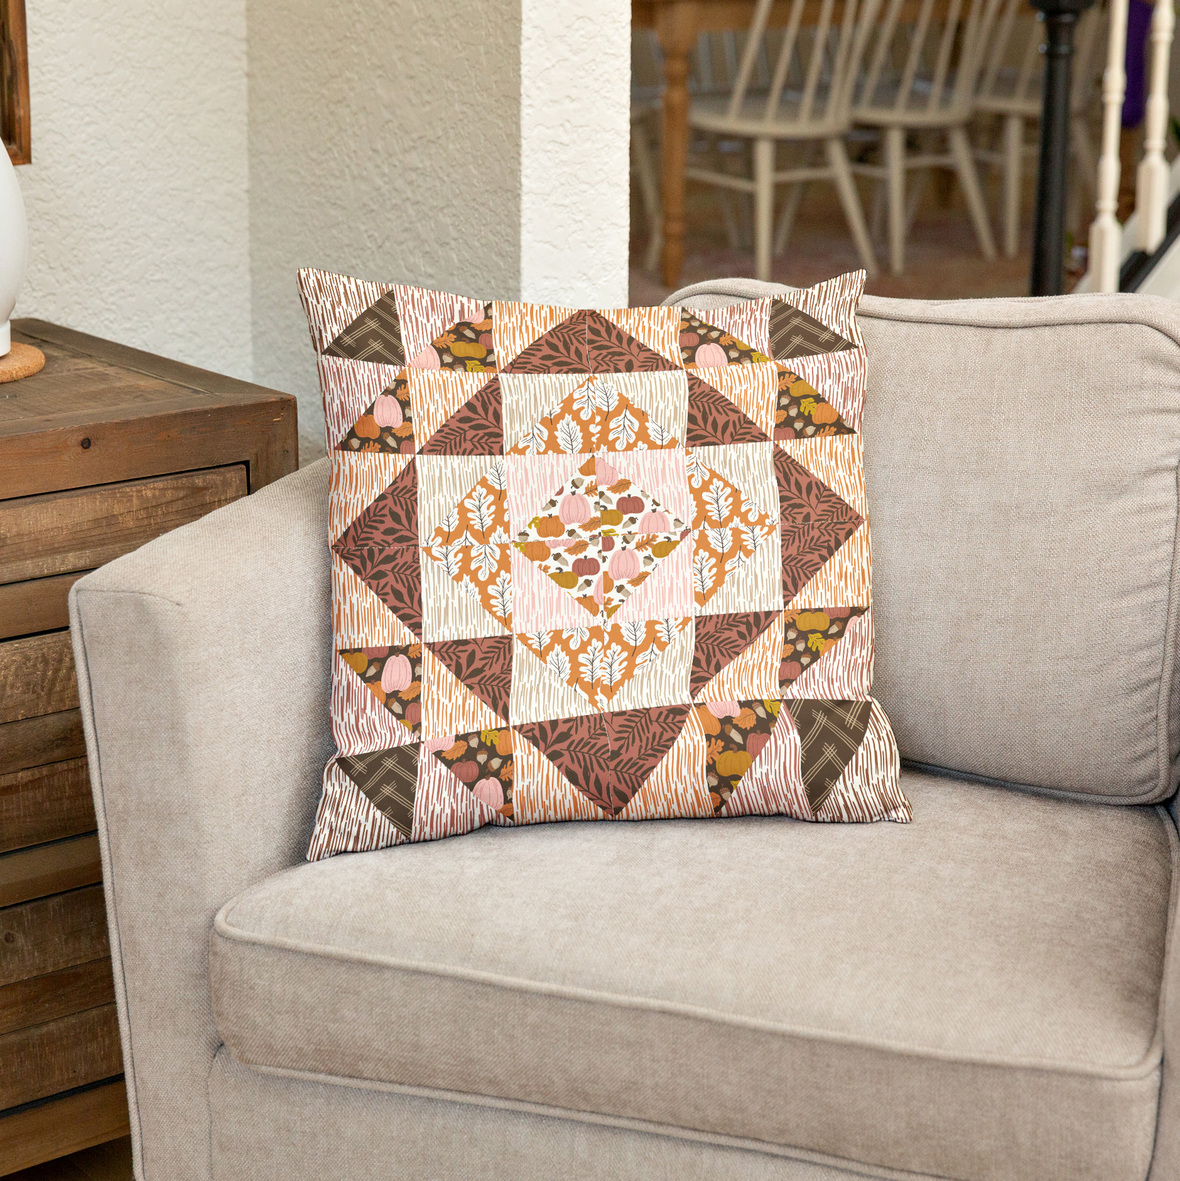 Pillow on Beige Chair